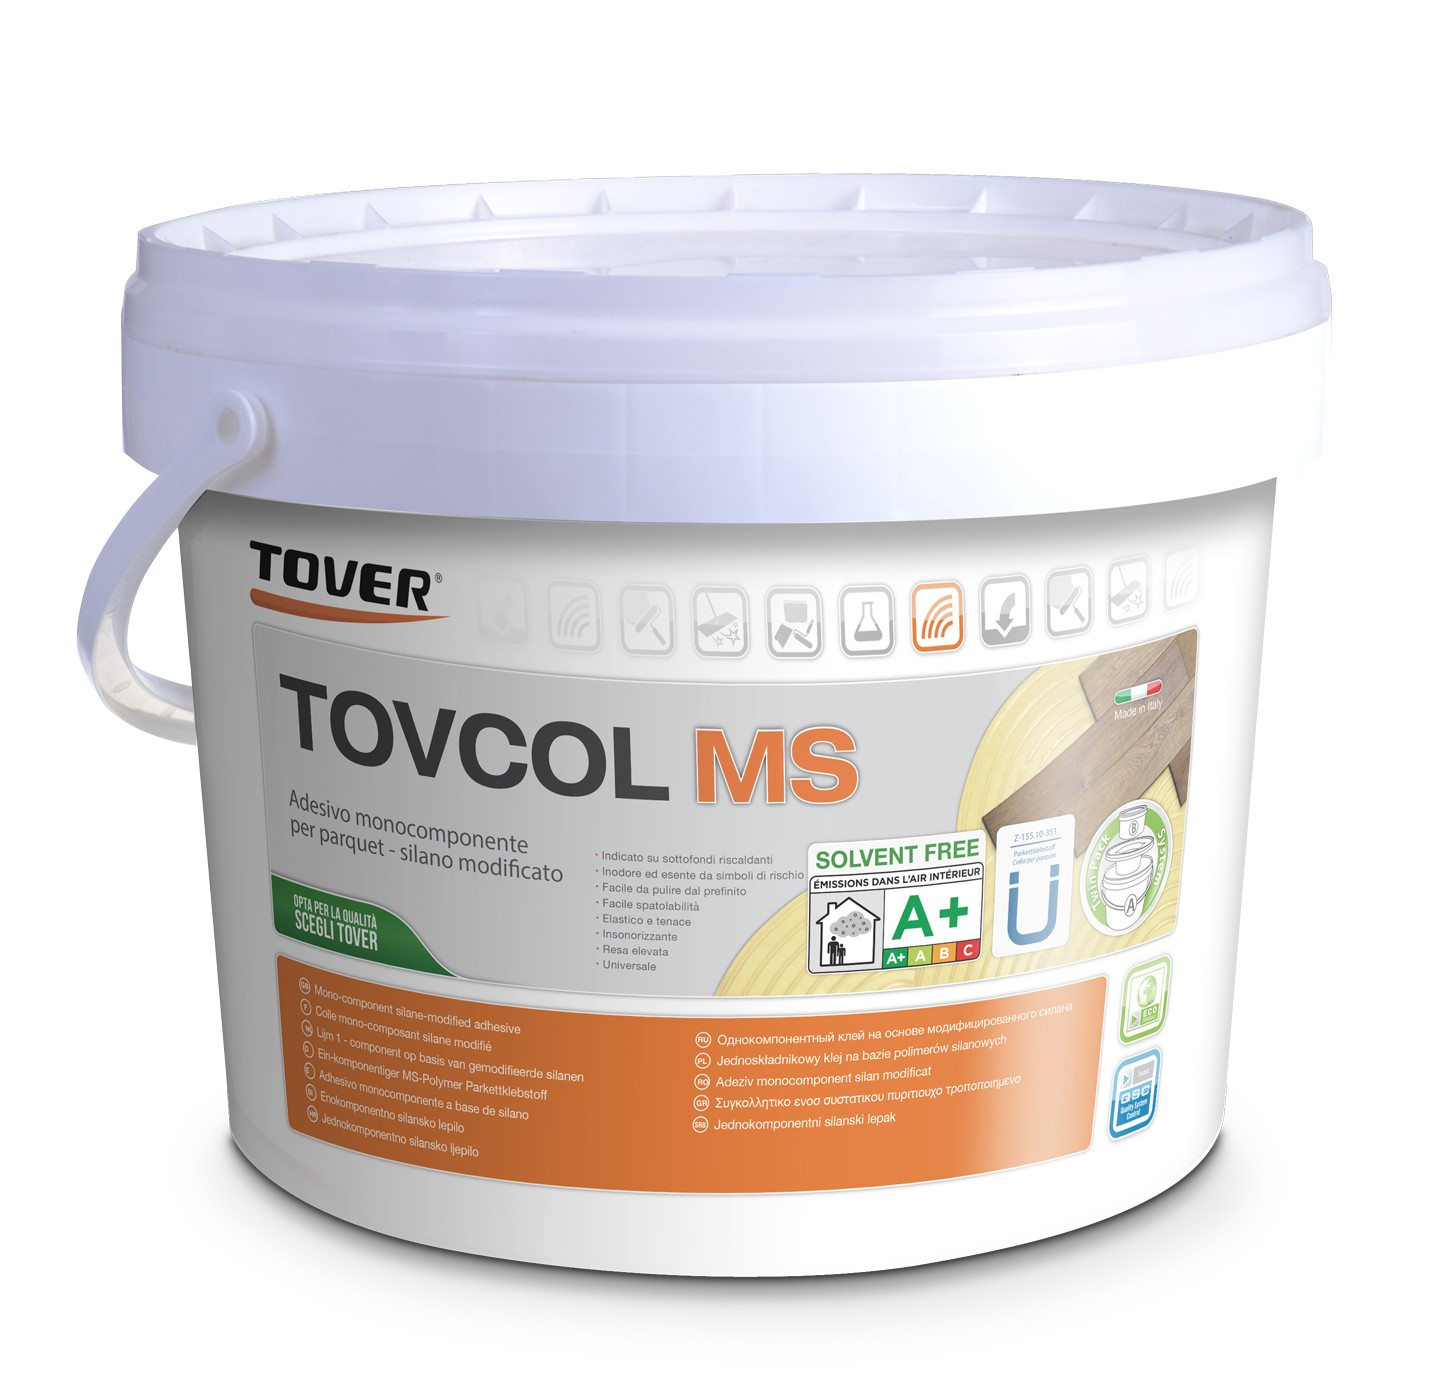 Tover  Mono-Component Silane Modified Adhesive Tovcol MS Polymer